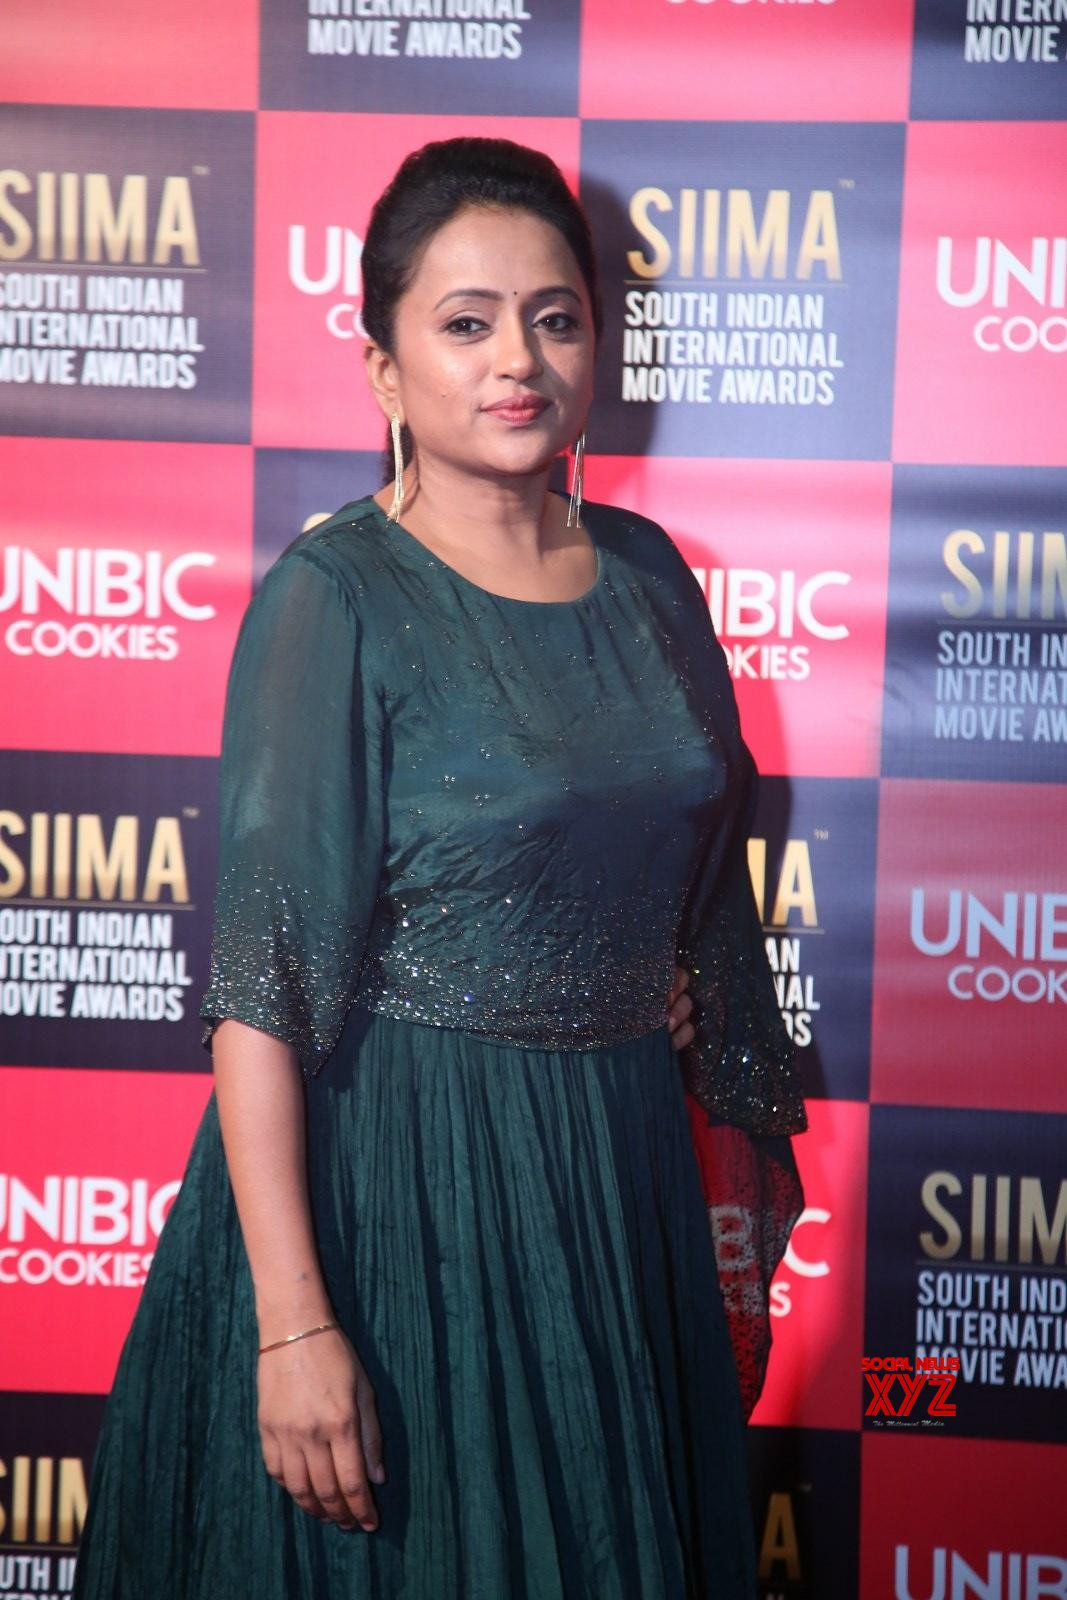 Anchor Suma Stills From SIIMA Awards 2019 Red Carpet